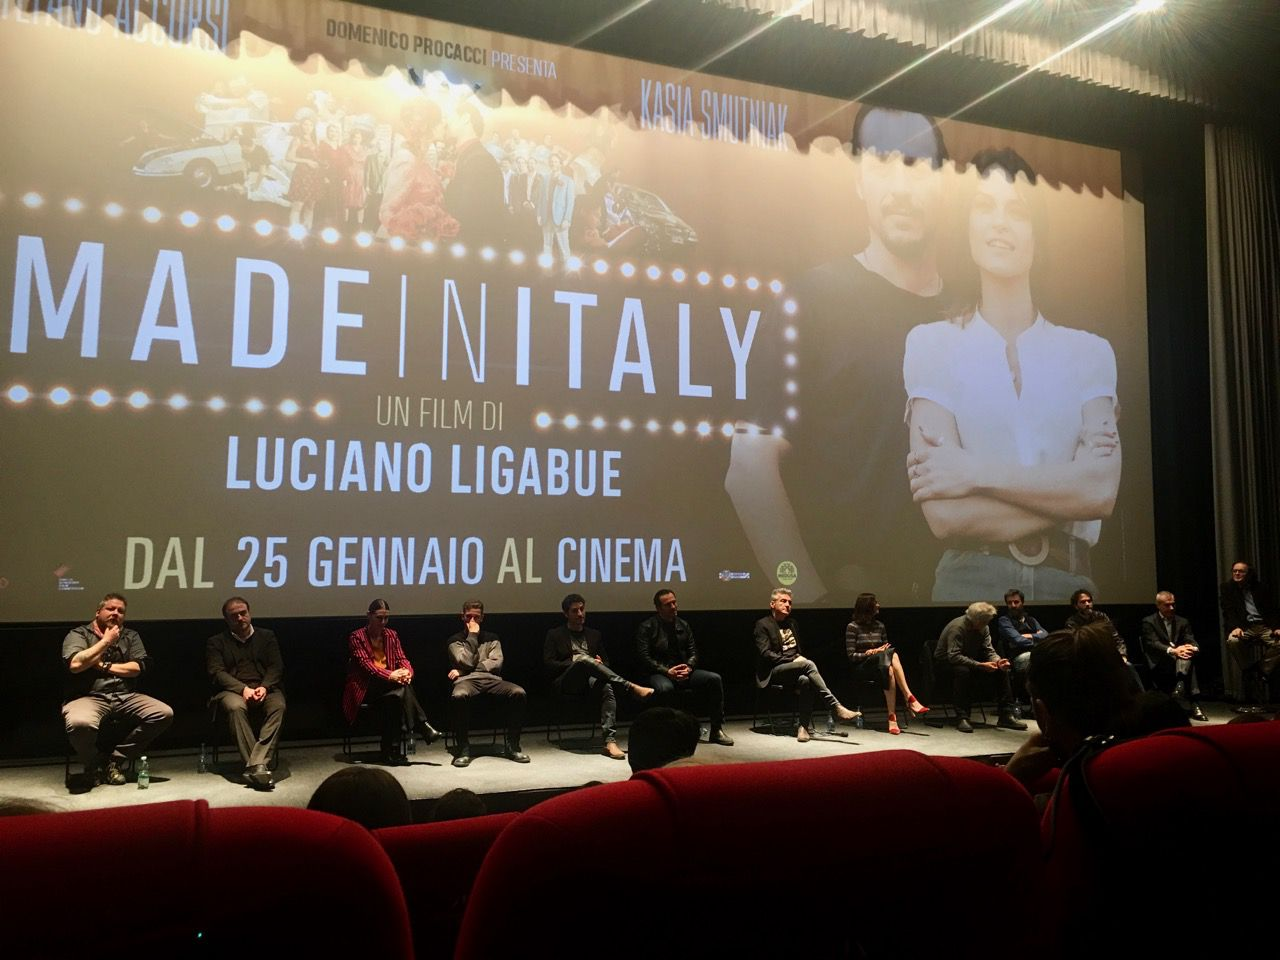 Made in Italy, film al cinema di Ligabue: recensione e curiosità